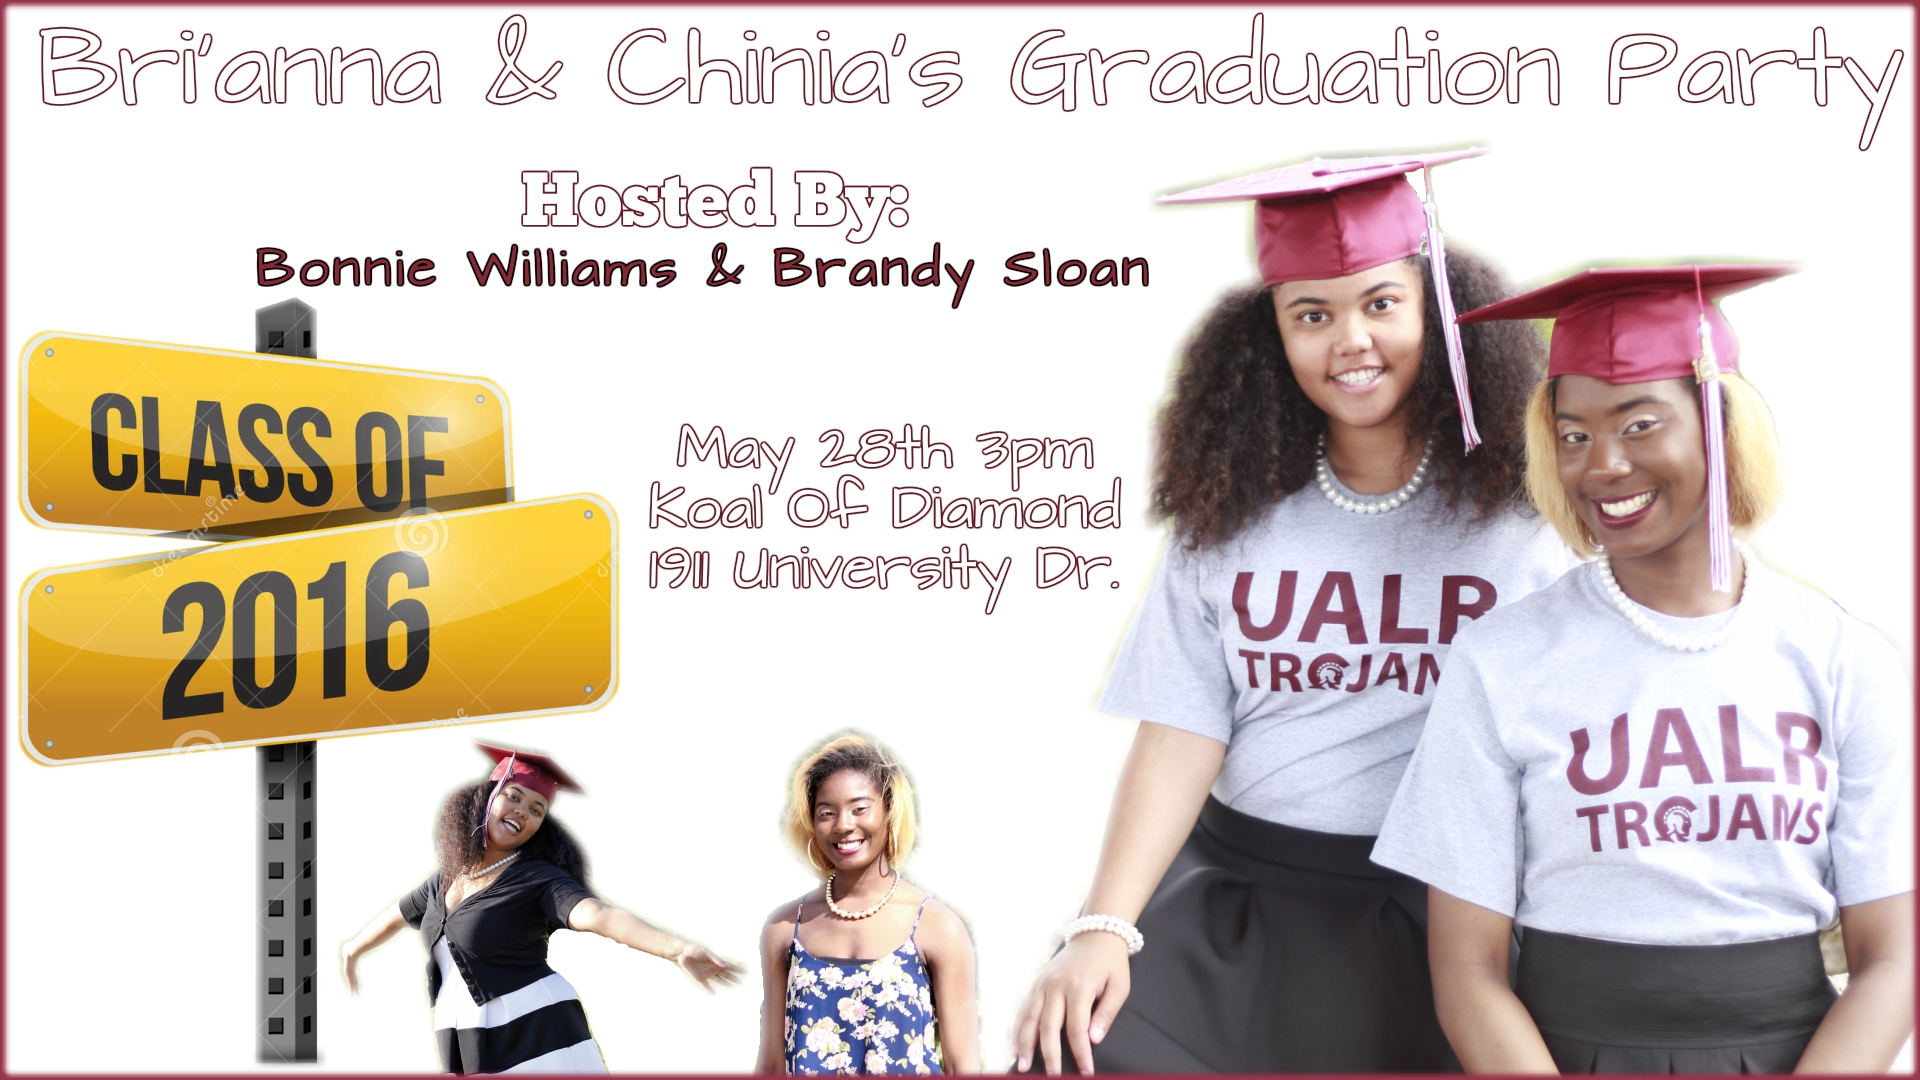 sloan ballard graduation party